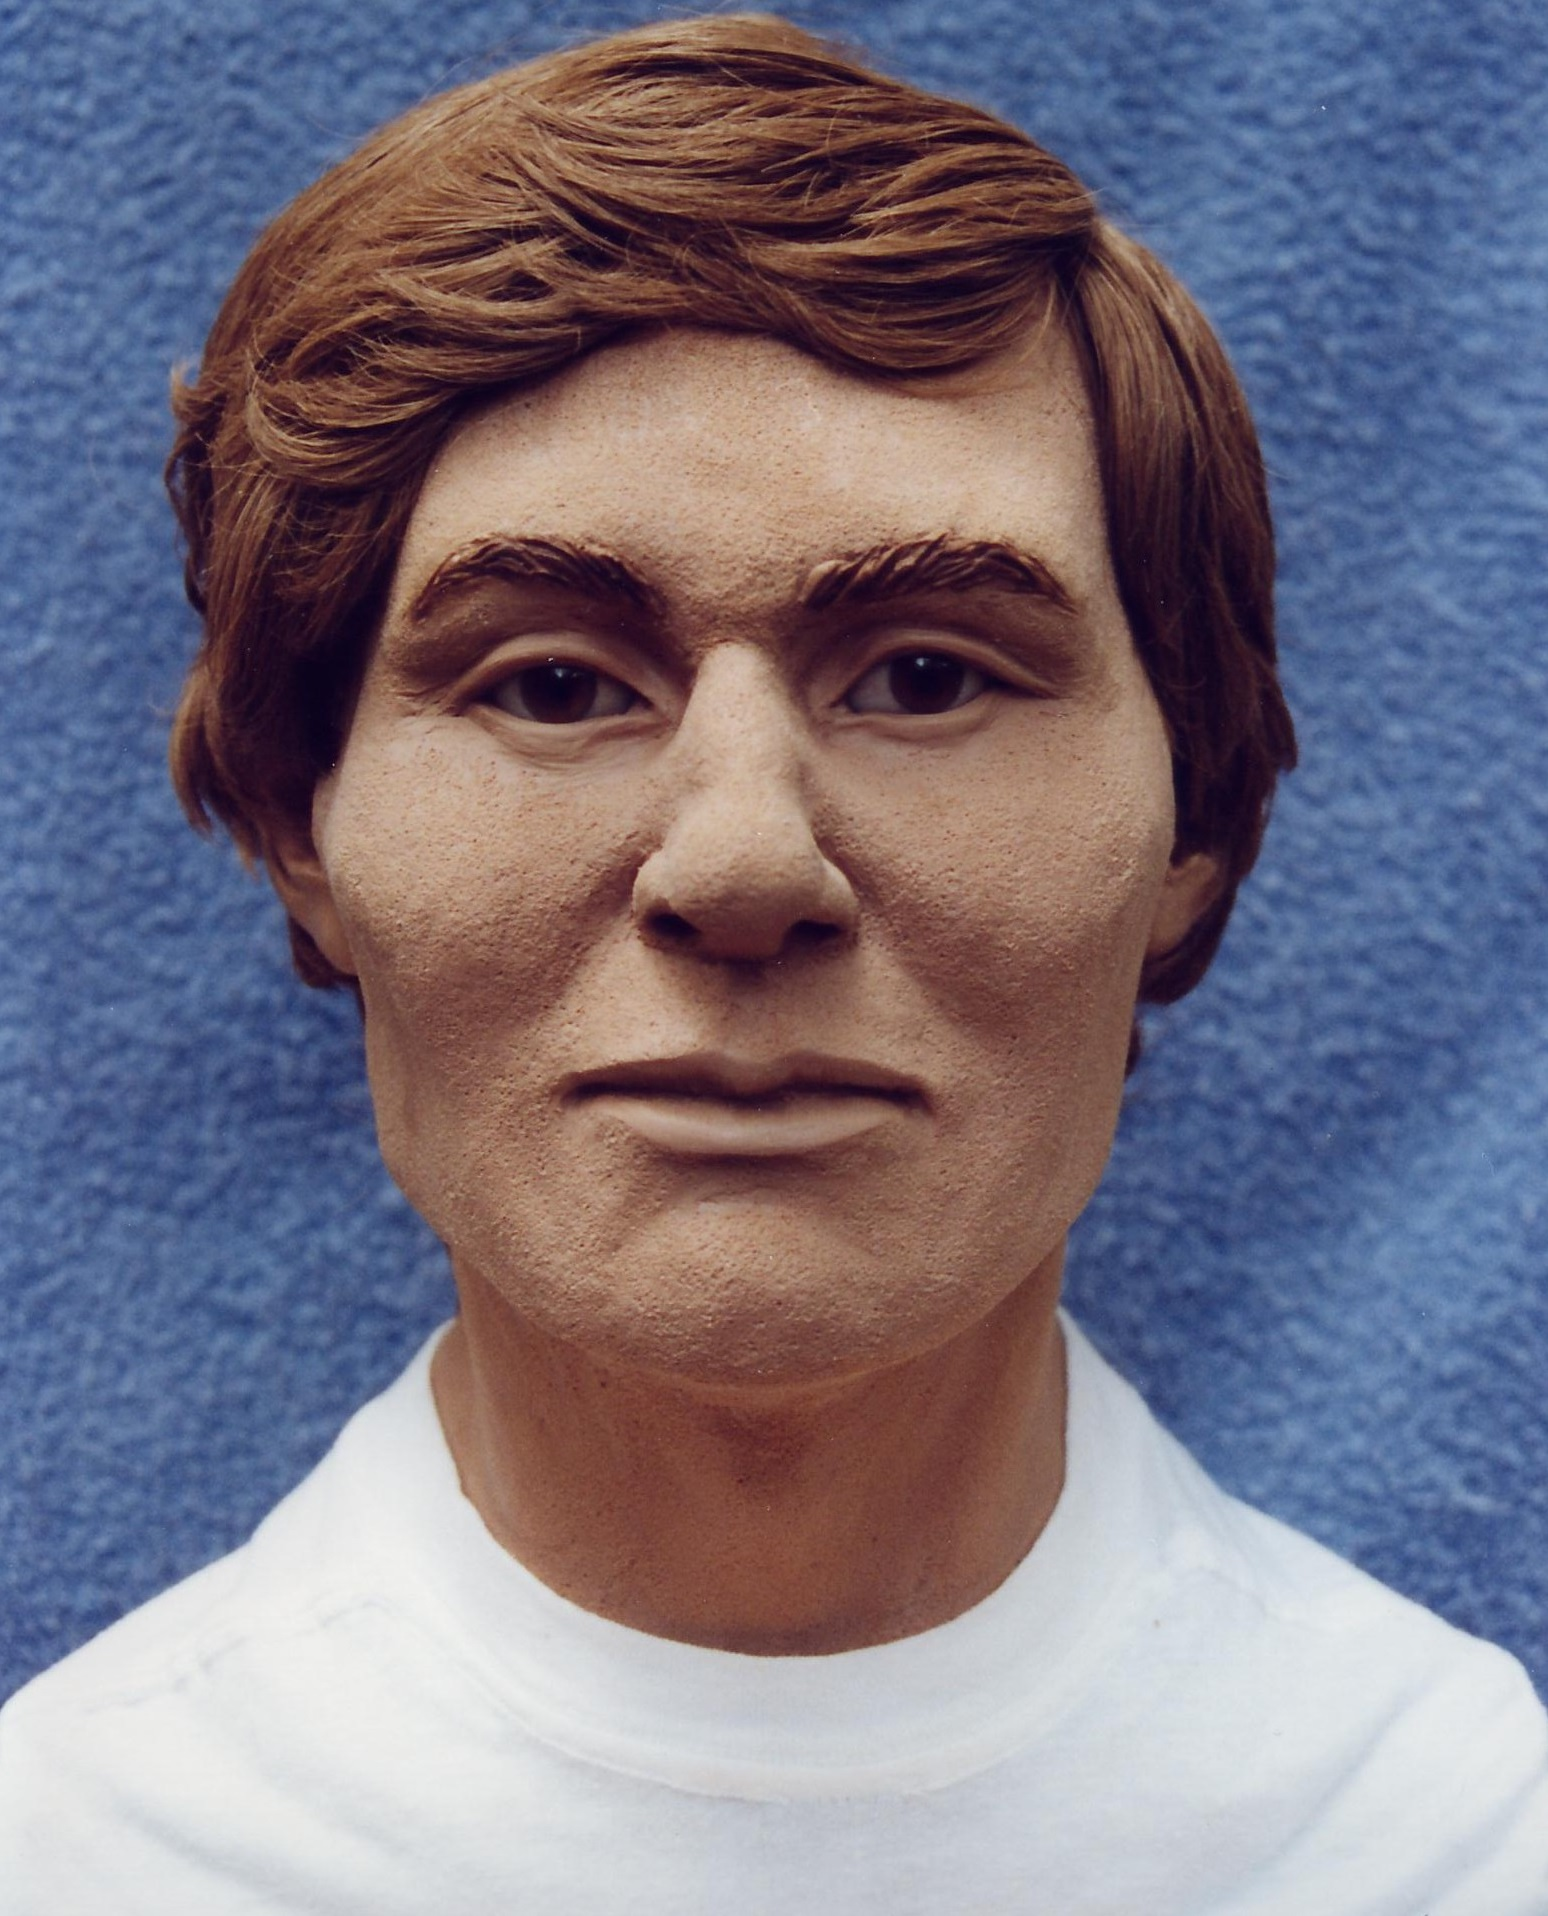 Pittsburg County John Doe (1995)